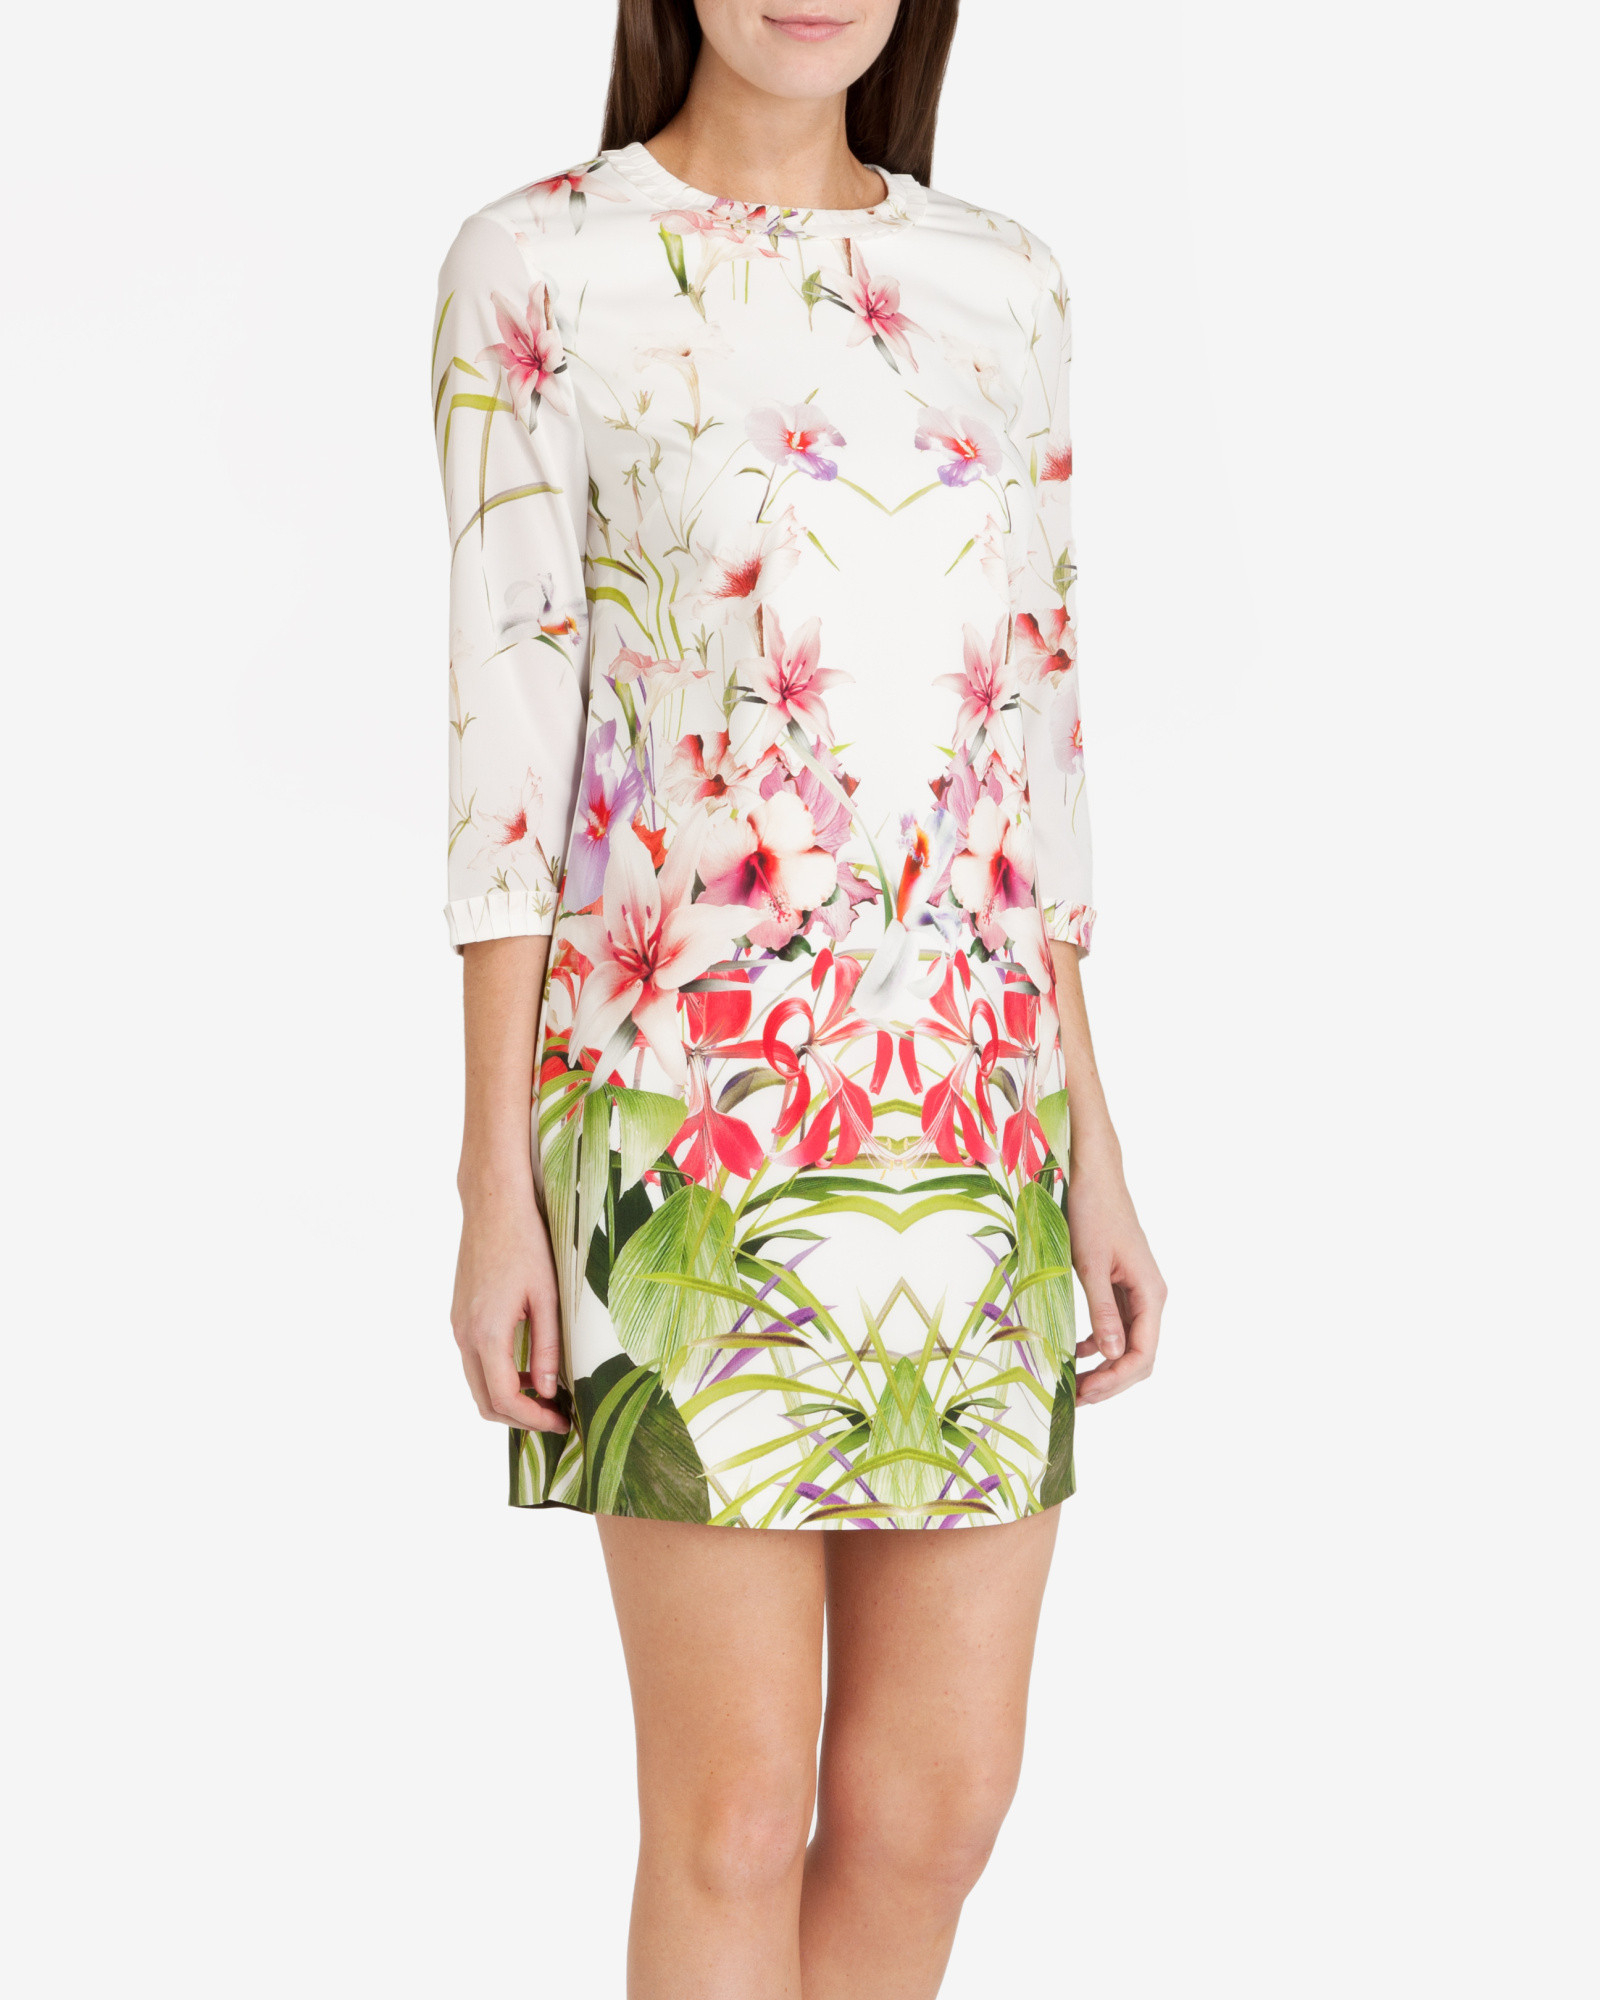 e0d33cdb2 Lyst - Ted Baker Mirrored Tropics Tunic Dress in White